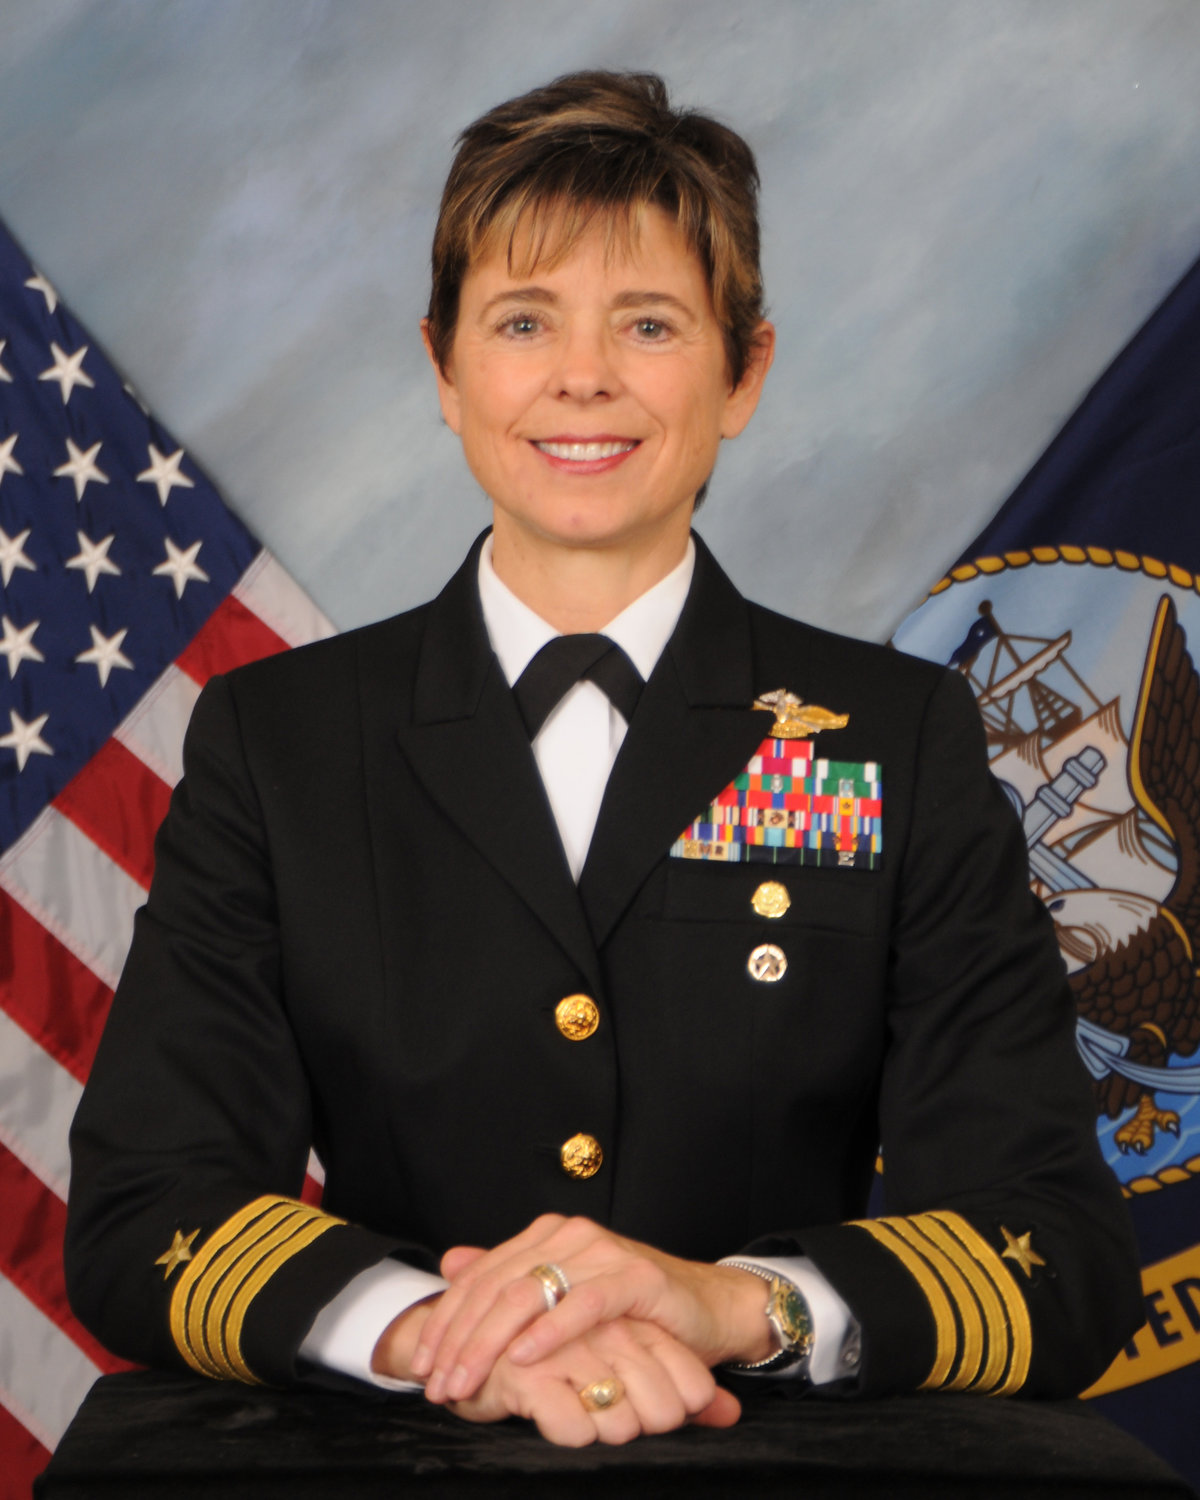 Capt. Candace Eckert, of Phoenix, supports and defends freedom around the world as a Navy Fleet Support Officer.